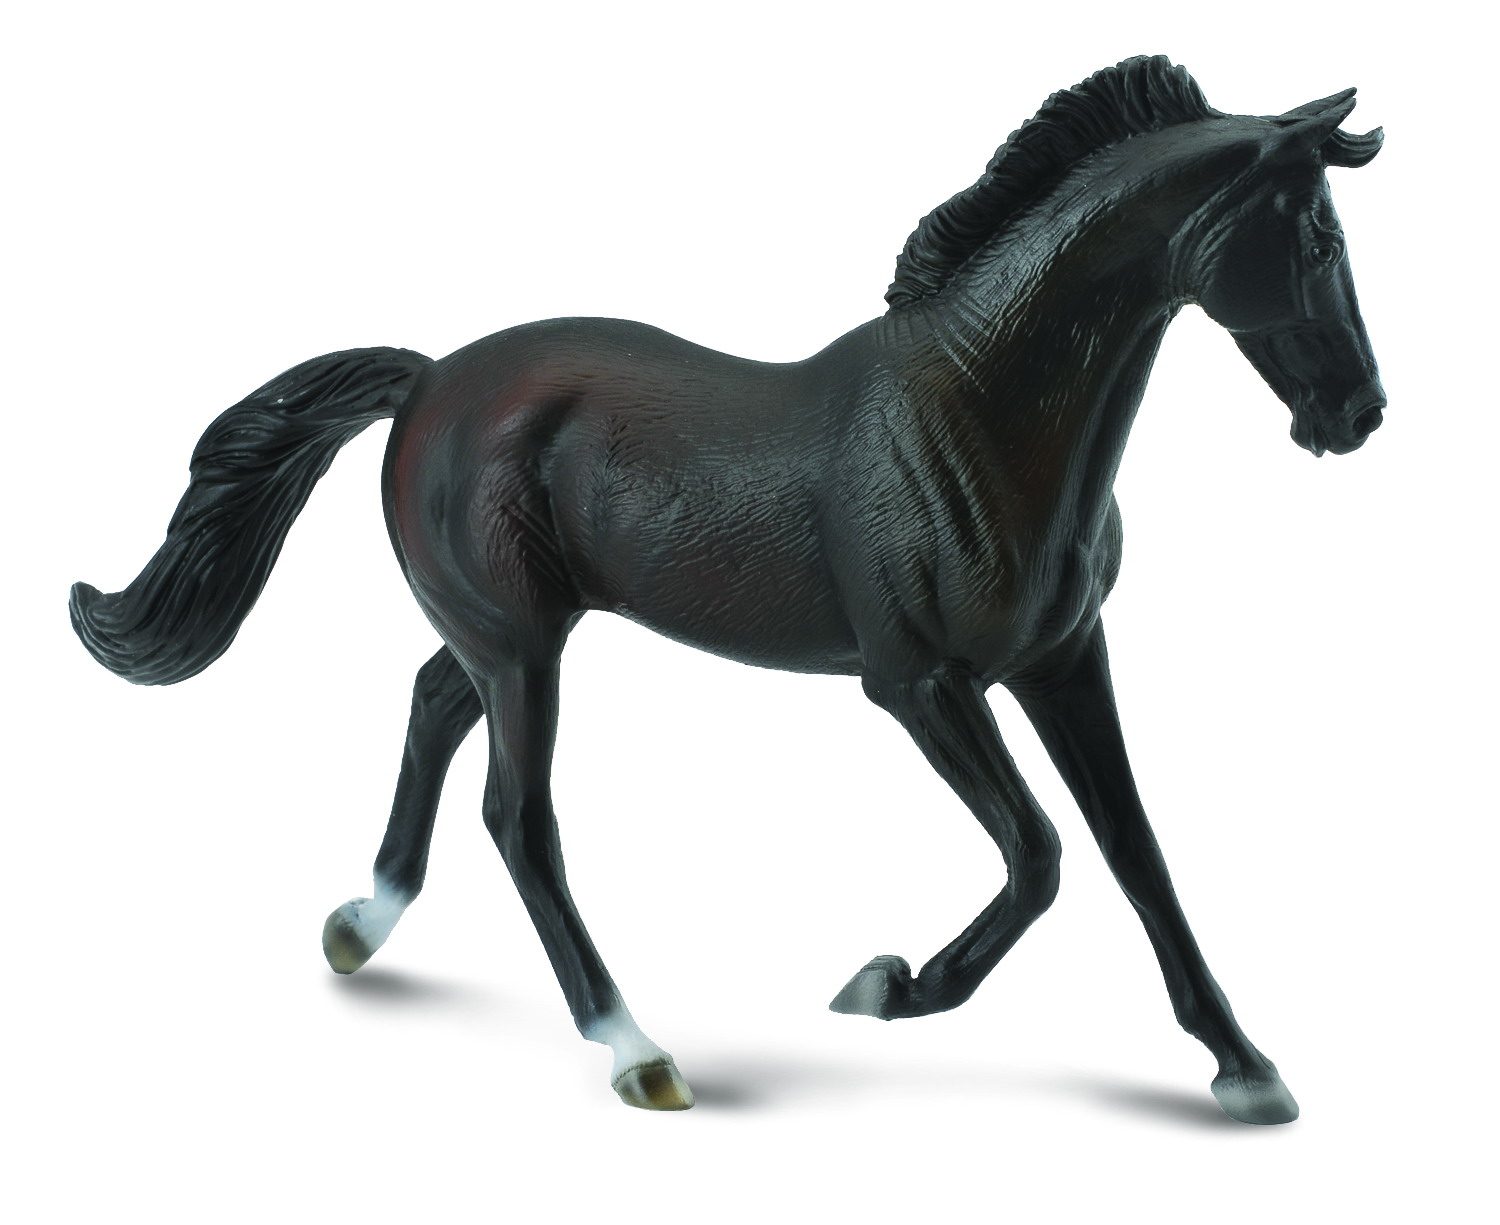 Figurina Iapa Thoroughbred Neagra pictata manual XL Collecta